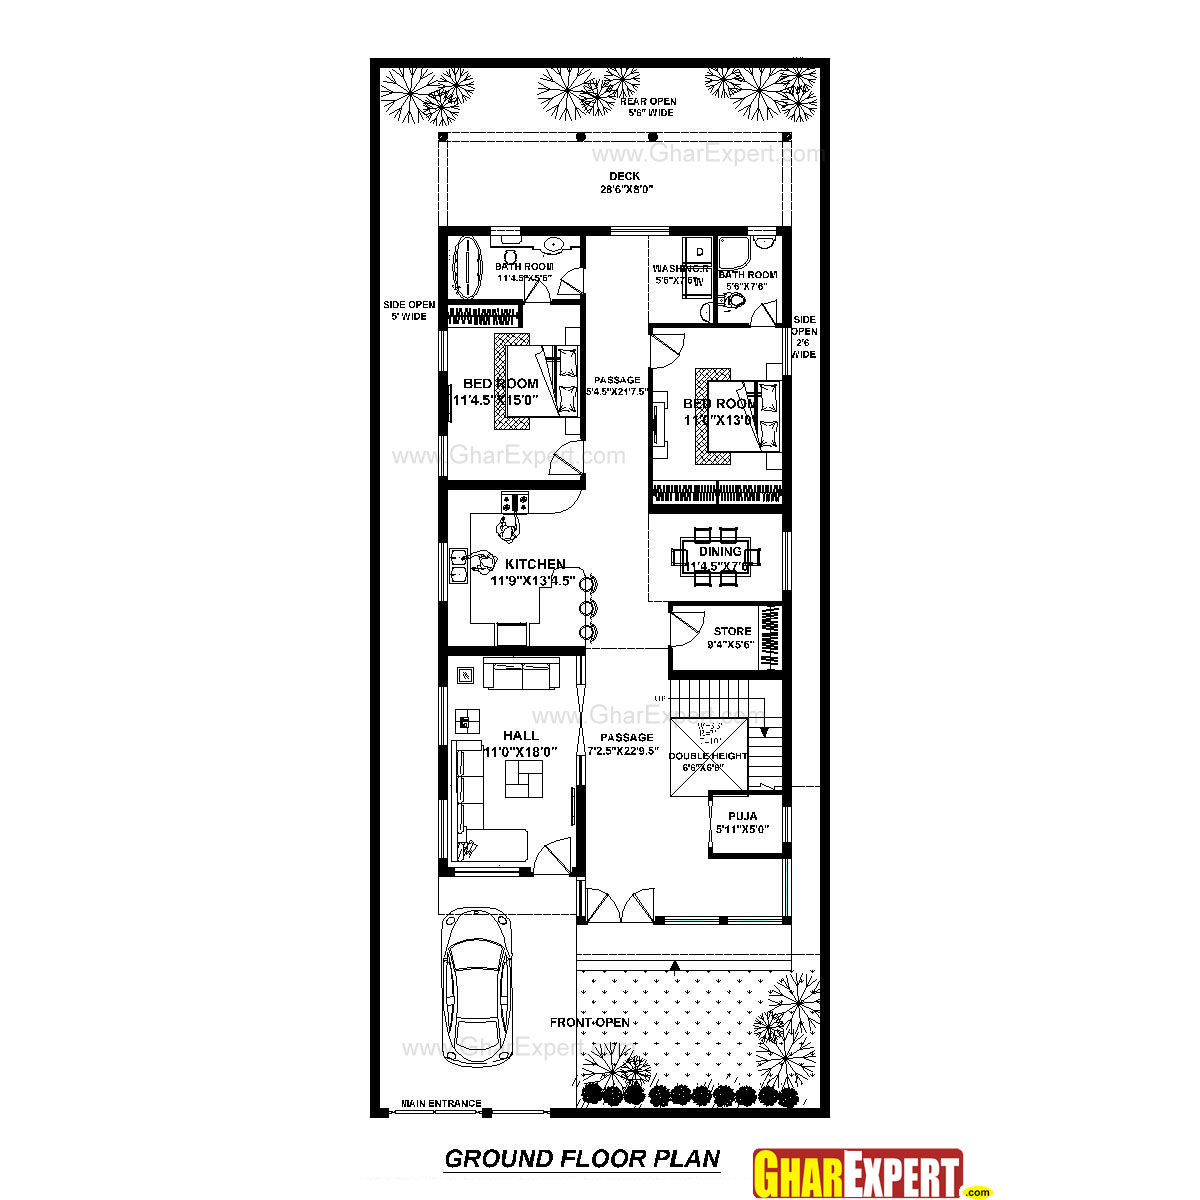 100 sq ft room size home mansion for 100 square feet room size